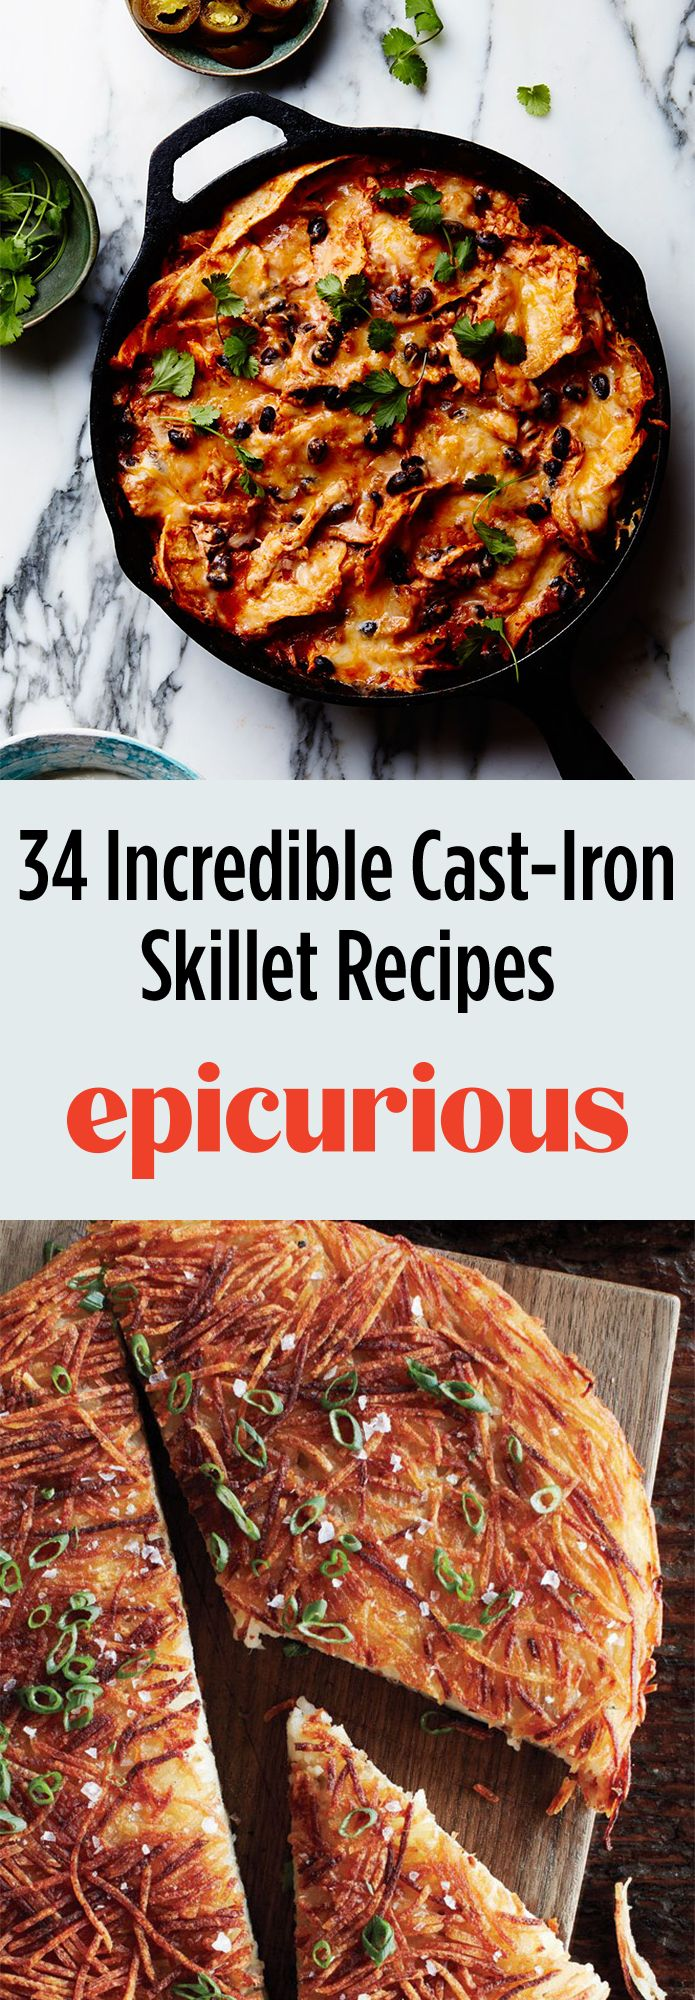 34 Incredible Cast-Iron Skillet Recipes | Epicurious